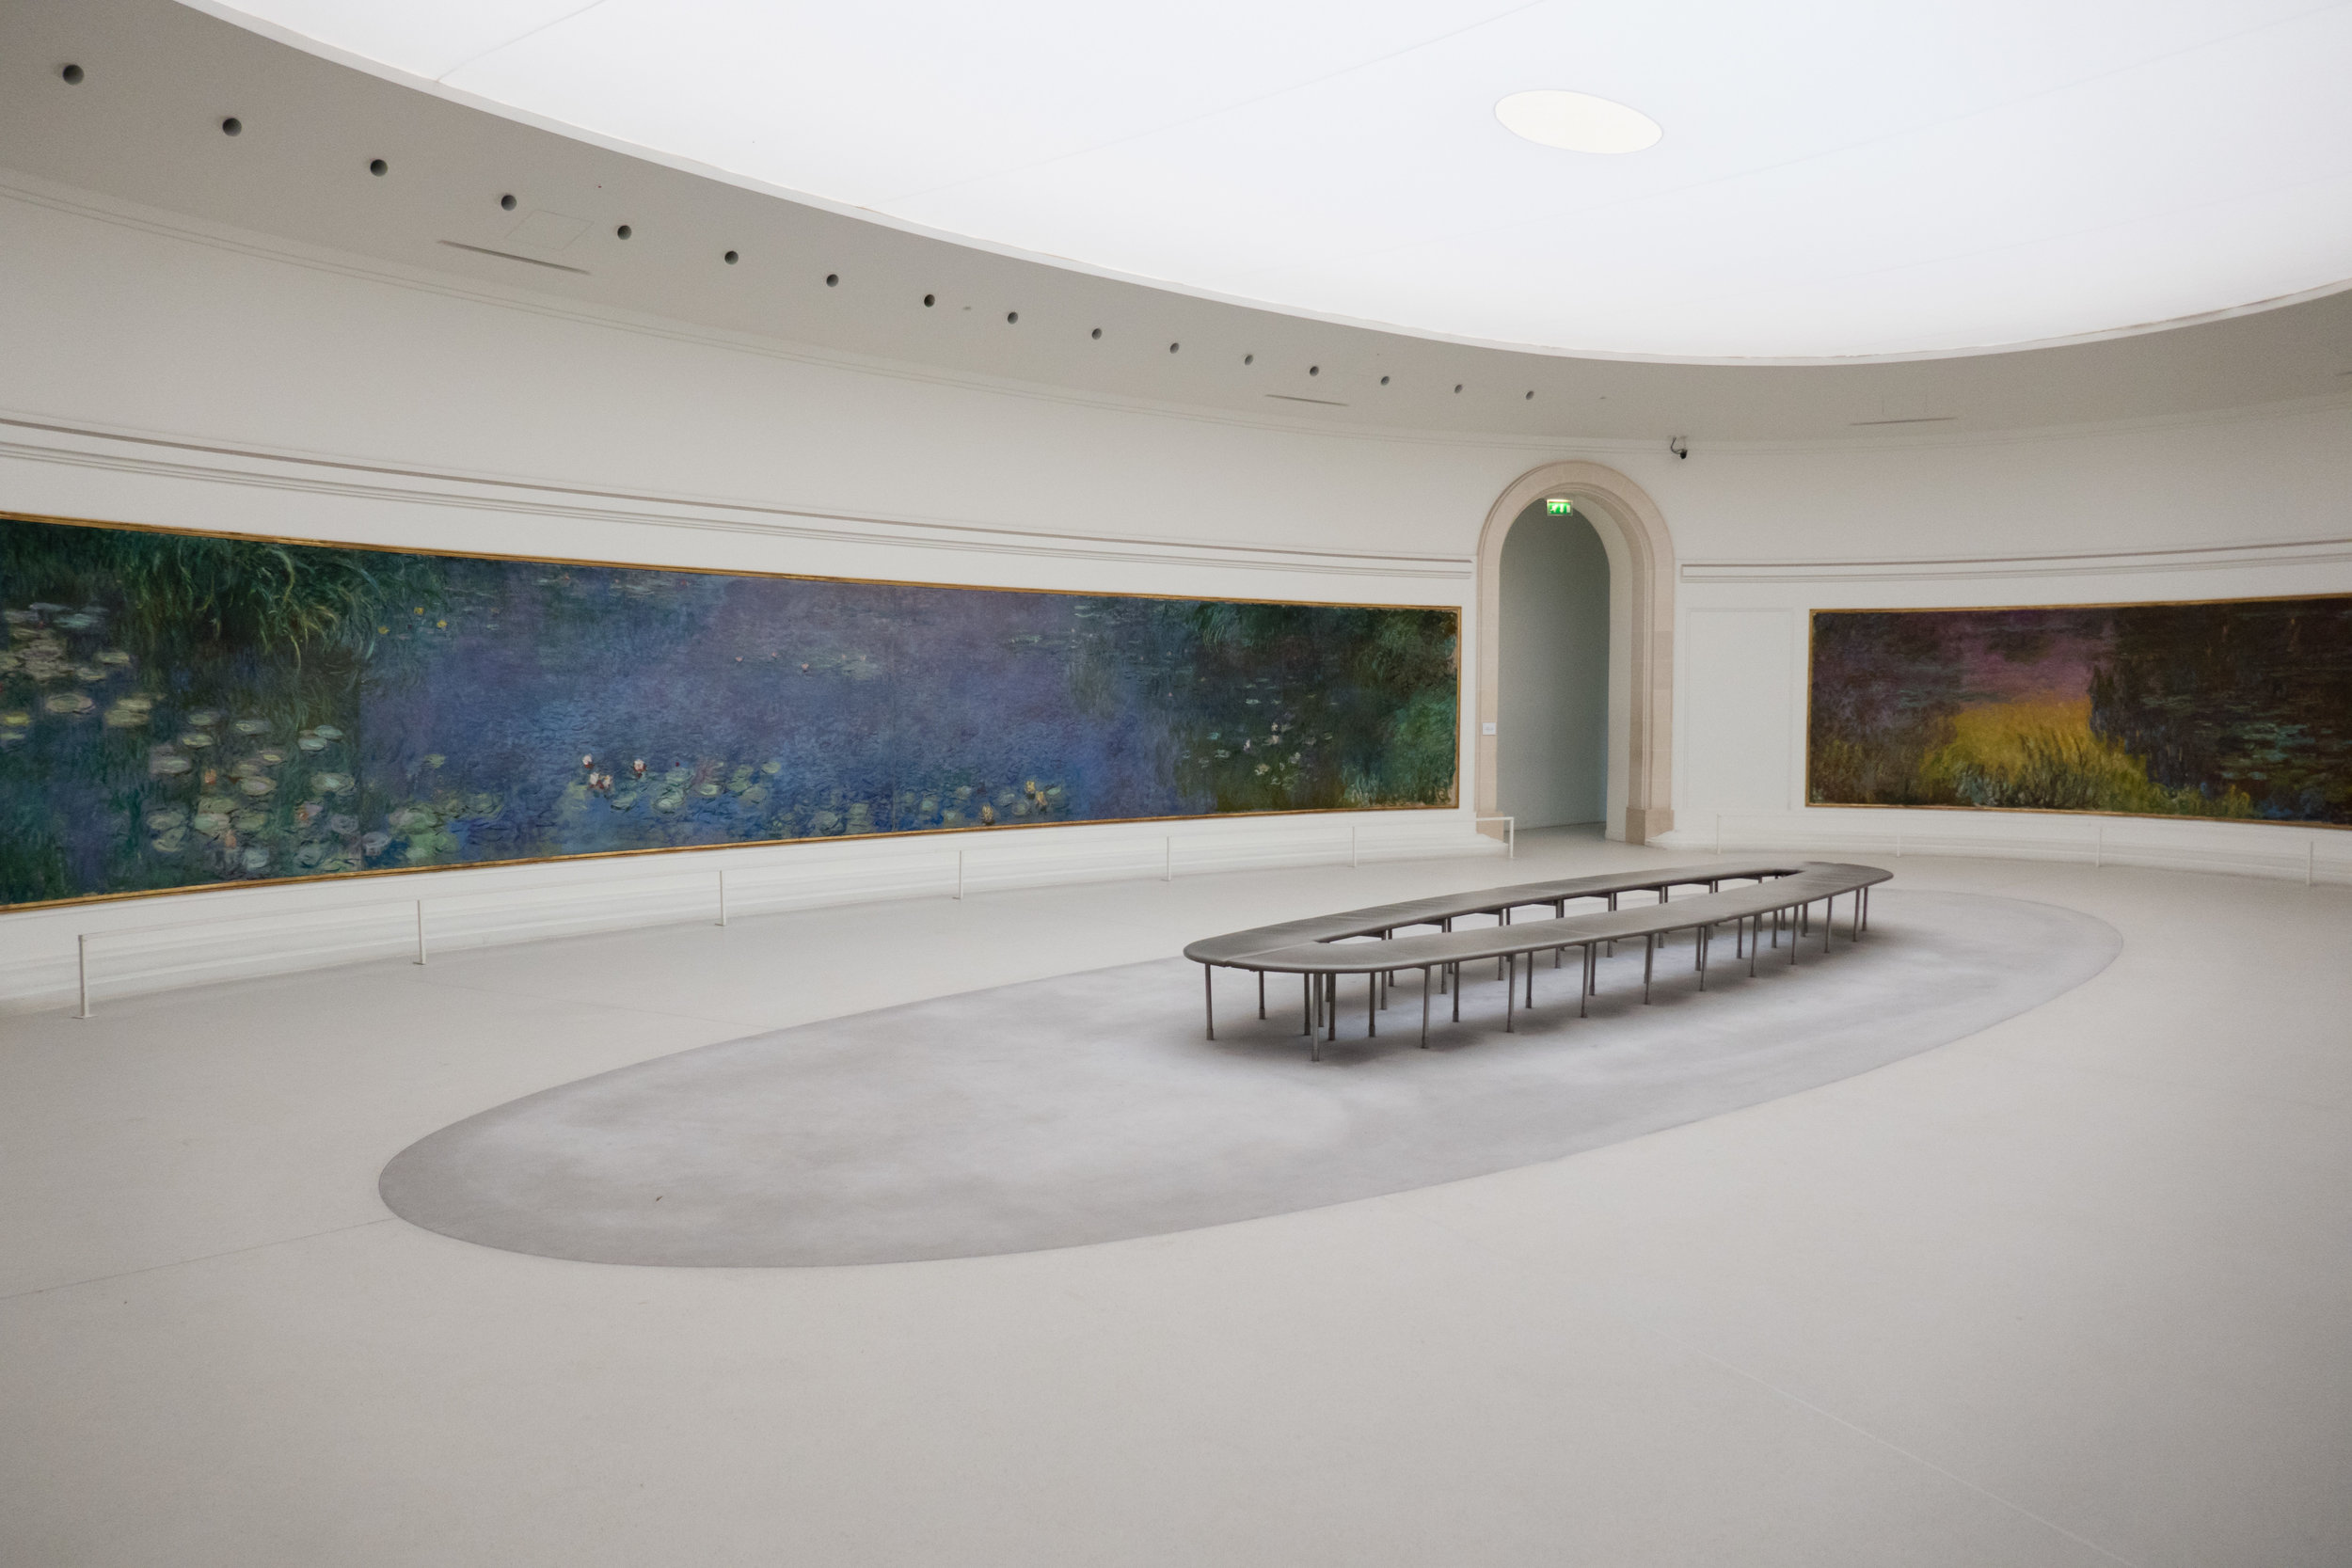 The Water Lilies Room in the L'Orangerie, Paris, France Photo:  Wikimedia Commons